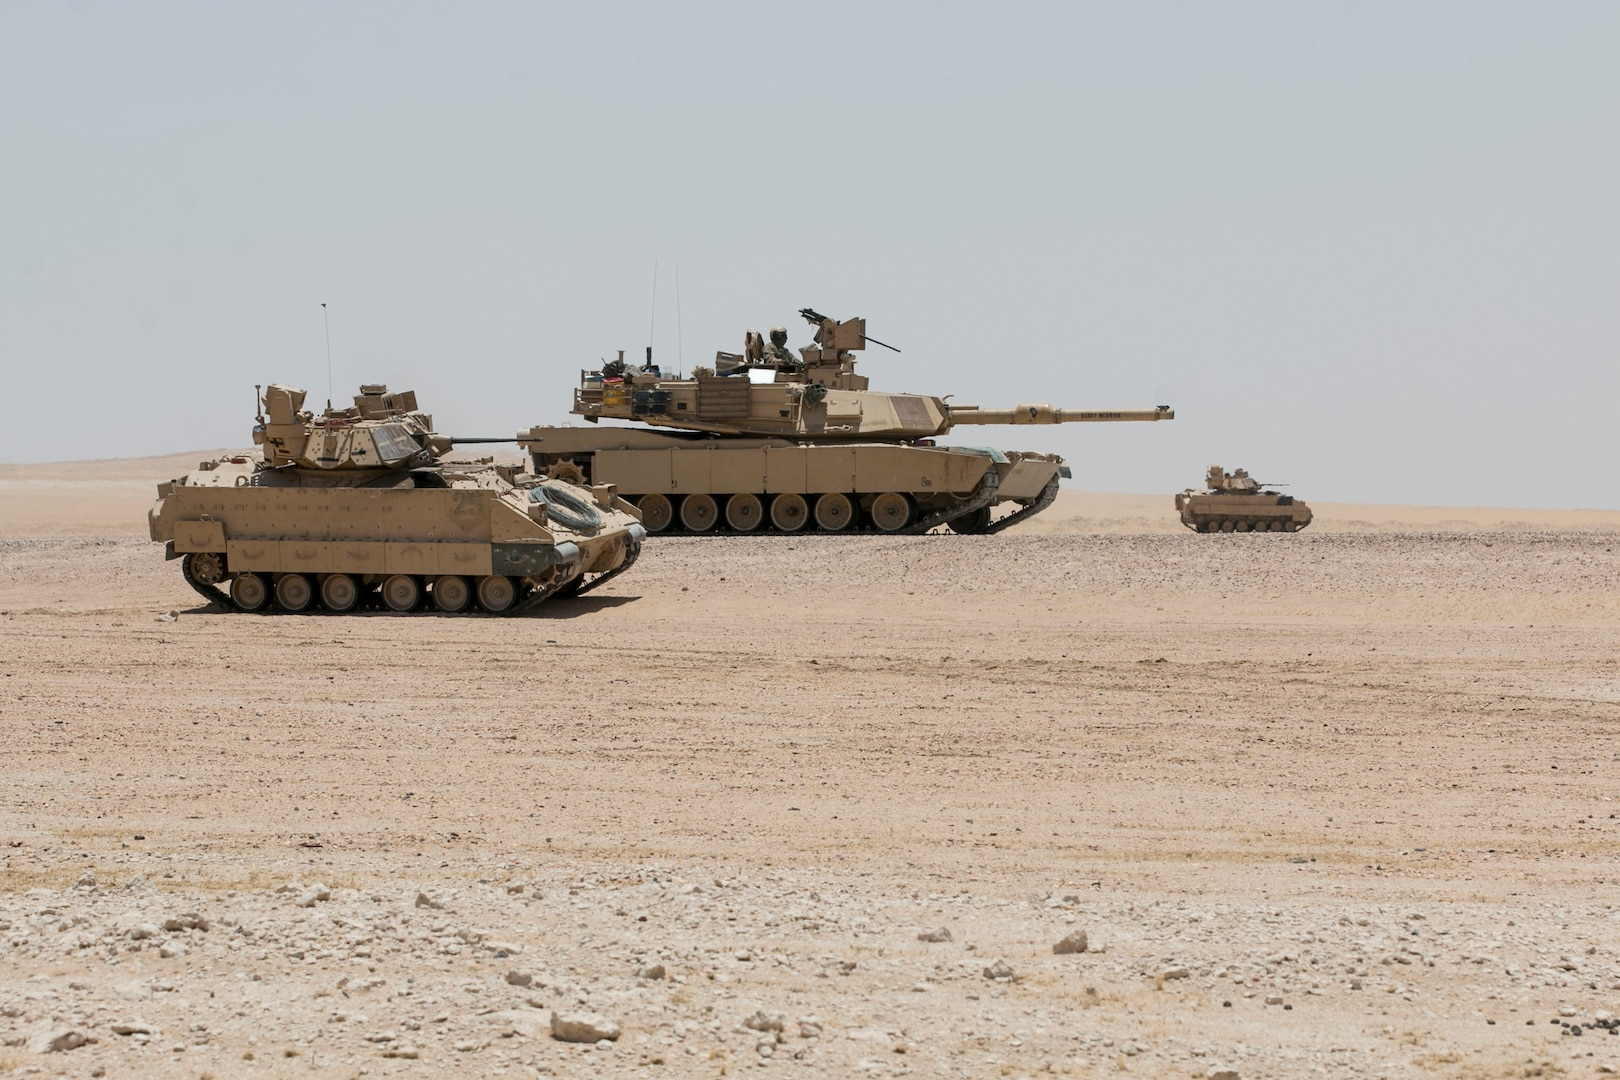 """An M2A3 Bradley armored reconnaissance crew assigned to 6th Squadron, 9th Cavalry Regiment """"Saber,"""" 3rd Armored Brigade Combat Team, 1st Cavalry Division scans the terrain for """"enemy"""" targets while an M1A2 Abrams Main Battle Tank crew provides direct fire support for the reconnaissance element during Hunter-Killer training at the Kuwait Multipurpose Range Complex June 7. Saber Squadron is developing Hunter-Killer as a concept, teaming Bradleys up with tanks for increased firepower and speed in the reconnaissance mission. (U.S. Army photo by Staff Sgt. Leah R. Kilpatrick/released)"""